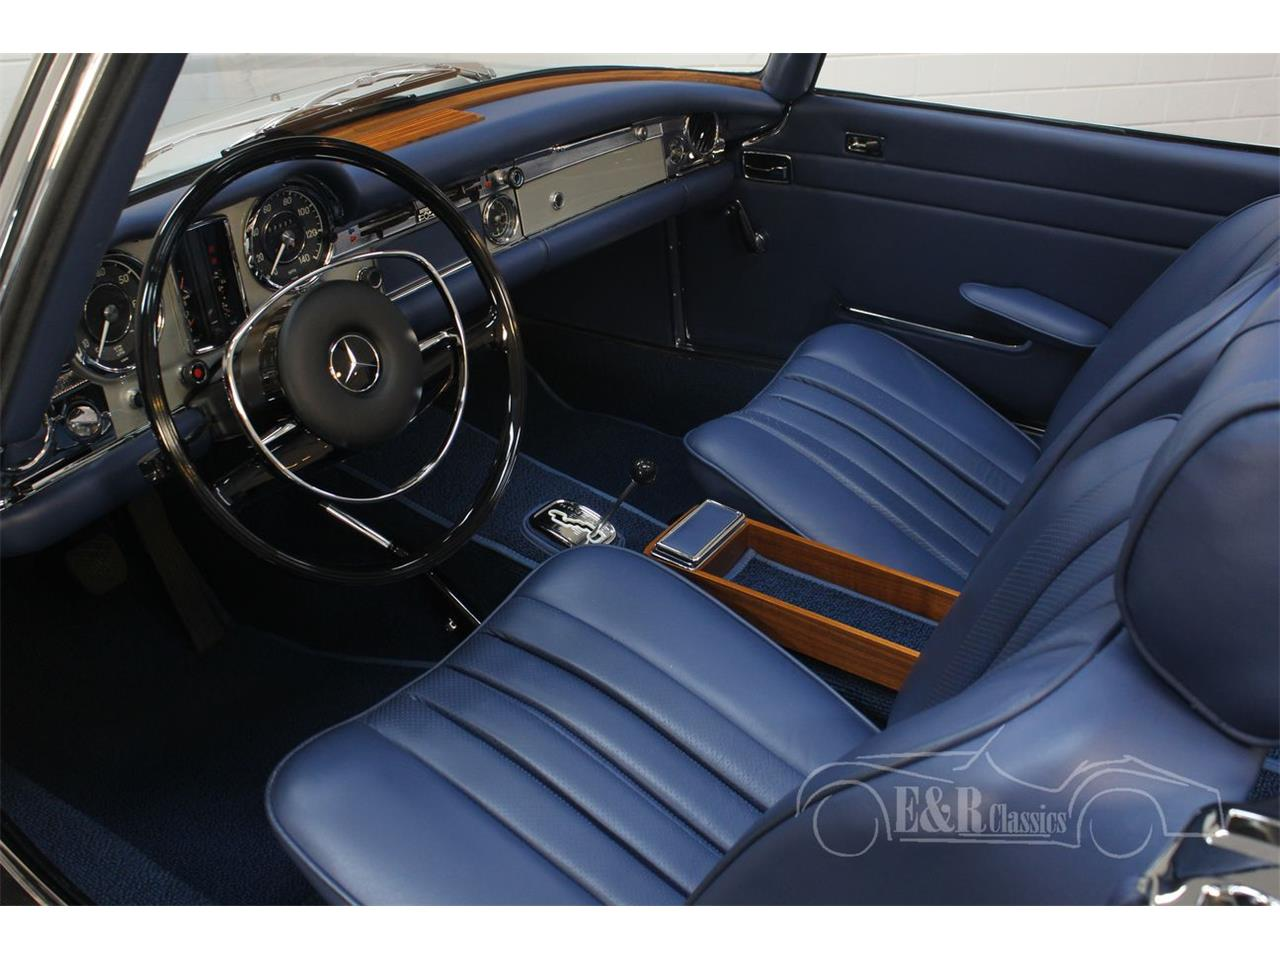 Large Picture of '69 Mercedes-Benz 280SL located in noord brabant - $190,500.00 - Q9A0